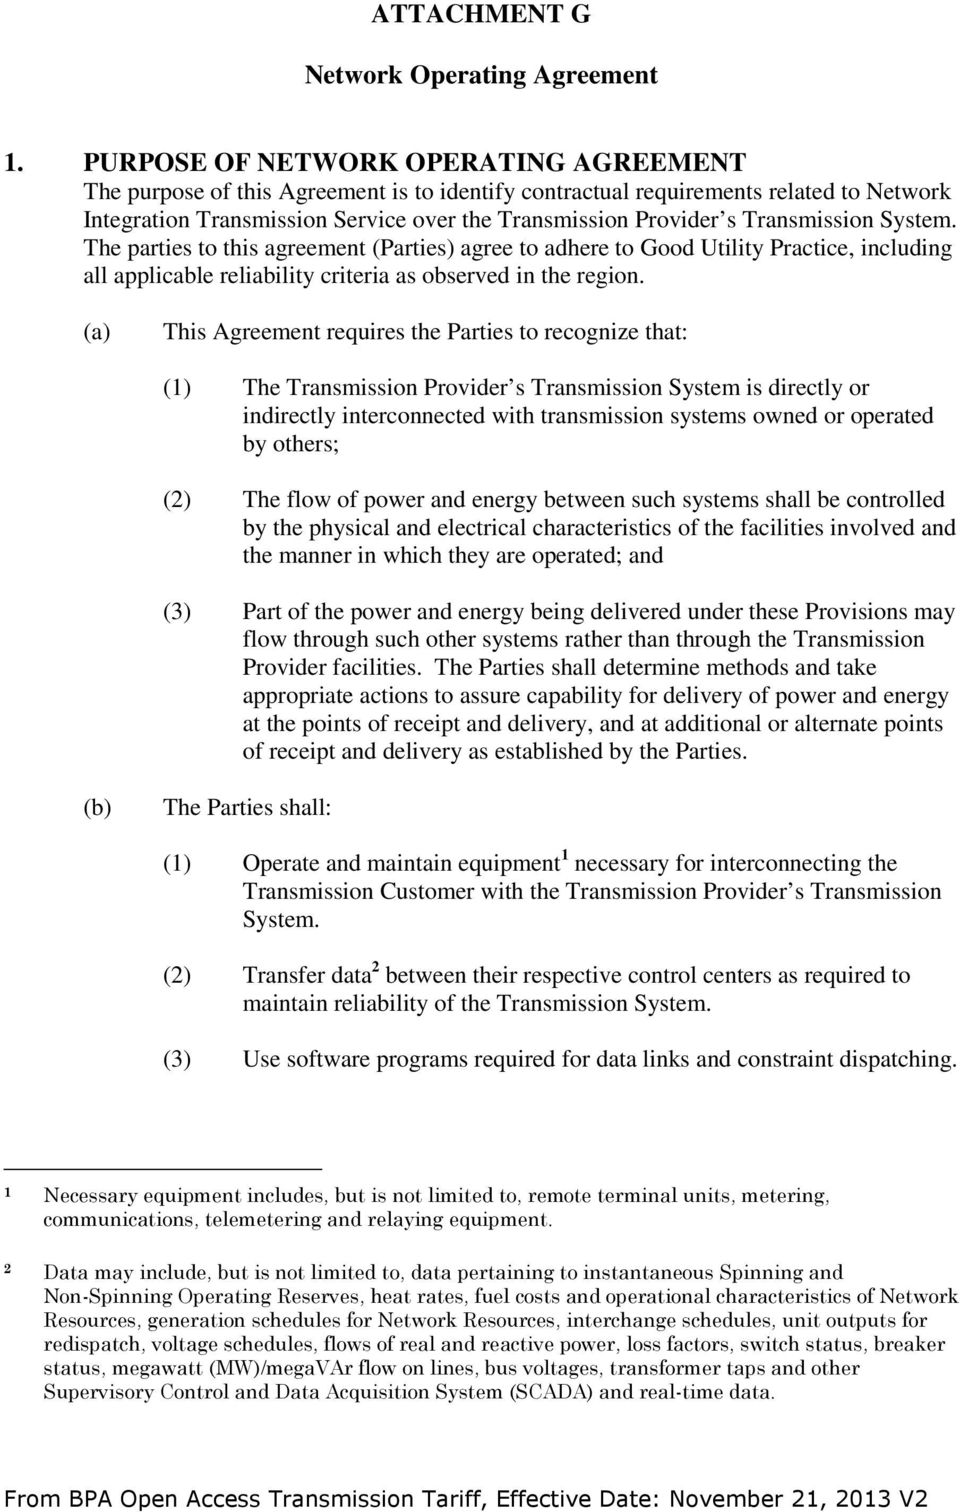 Transmission System. The parties to this agreement (Parties) agree to adhere to Good Utility Practice, including all applicable reliability criteria as observed in the region.